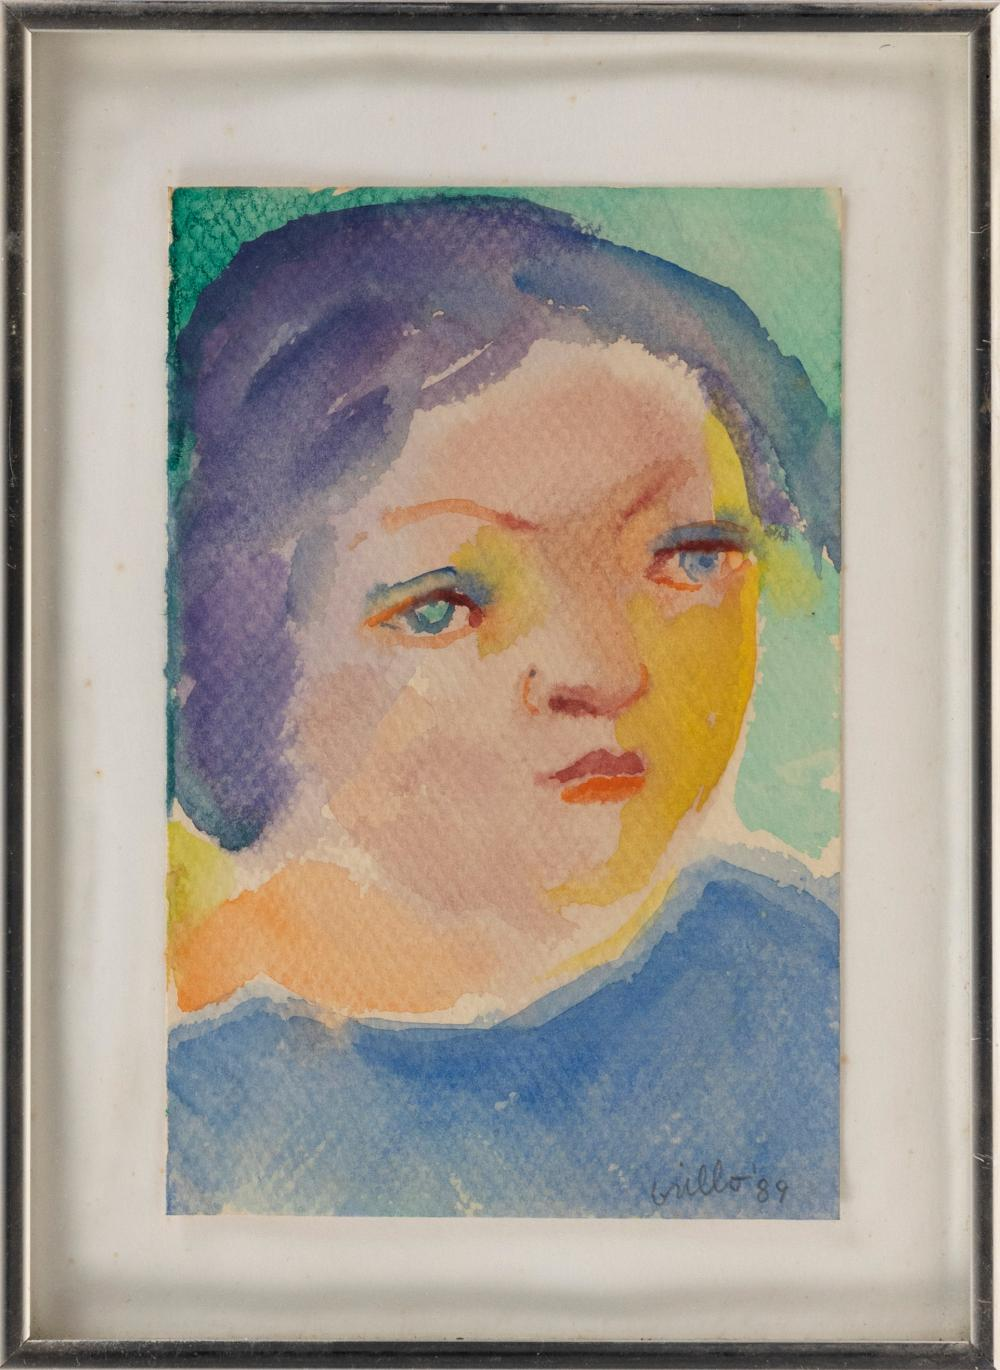 "JOHN GRILLO , Massachusetts, 1917-2014, Portrait of a woman., Signed and dated lower right ""Grillo '89""., Watercolor on paper, 8.5"" x 5.5"". Framed 11"" x 8.25""."